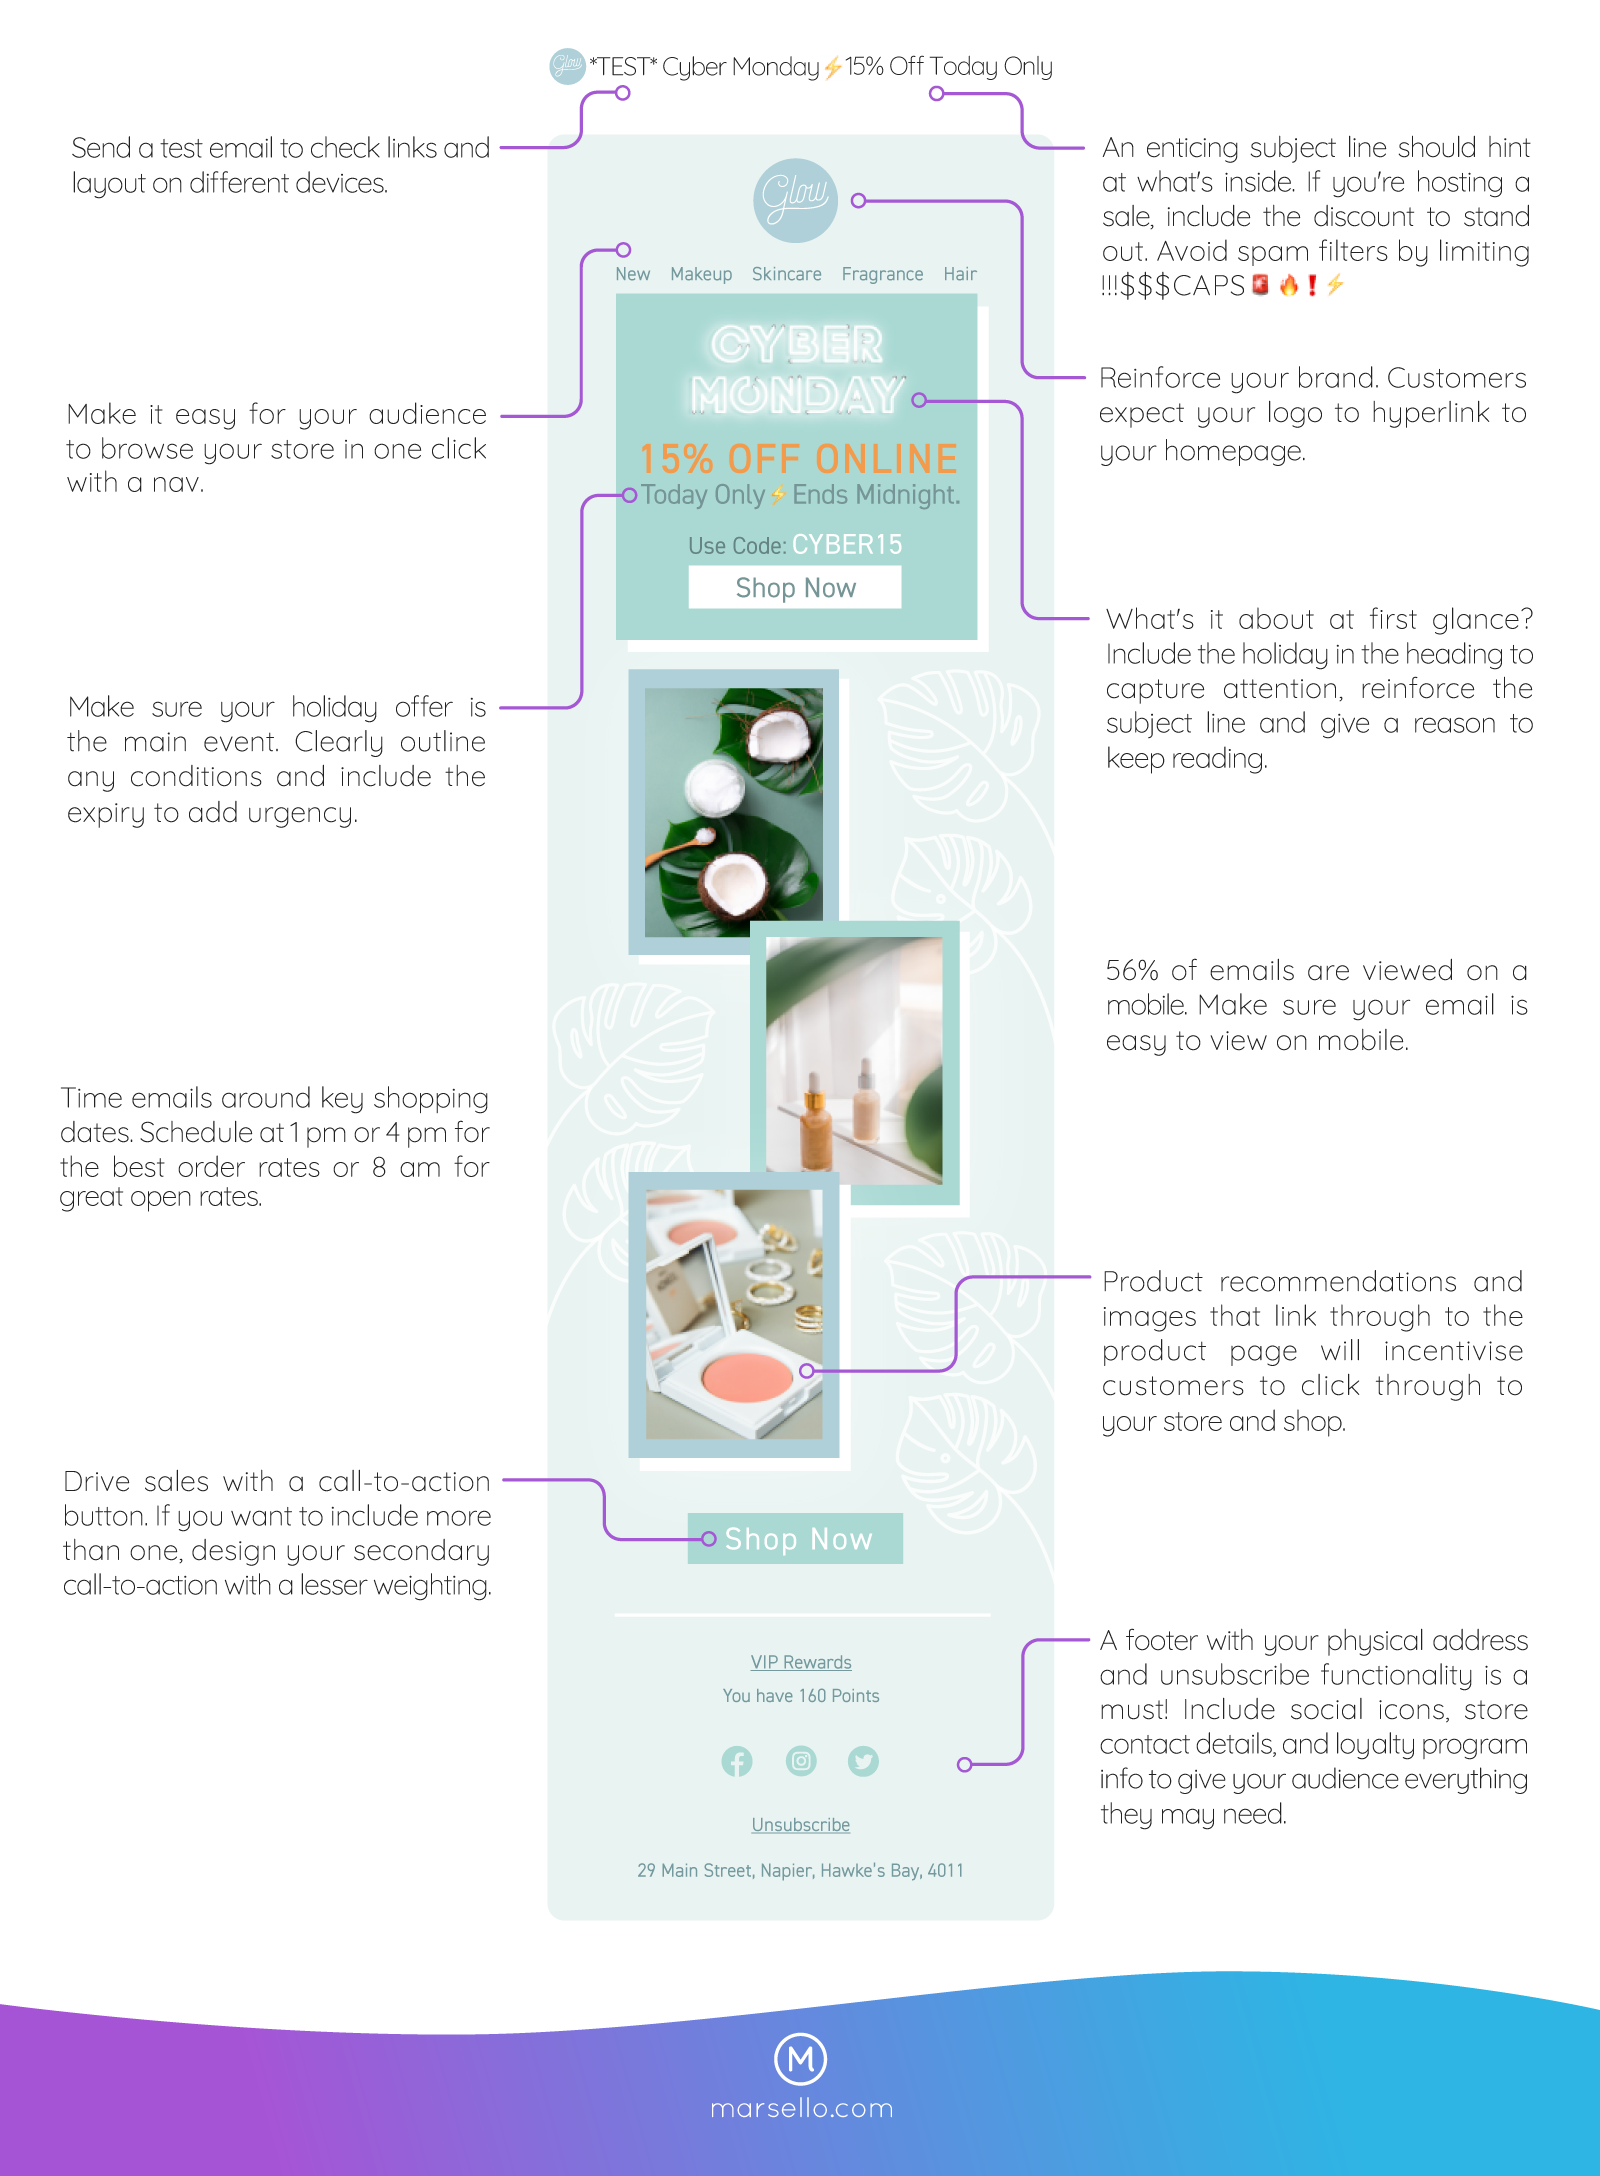 Alt tag: An in-depth infographic that gives retailers a step-by-step set of instructions on how to create email campaigns that appeal to customers and stay out of spam filters. The advice includes giving customers the option to unsubscribe, adding calls-to-action, including product images and clear branding/logos, suggested email sending times and including a holiday offer to entice customers in.